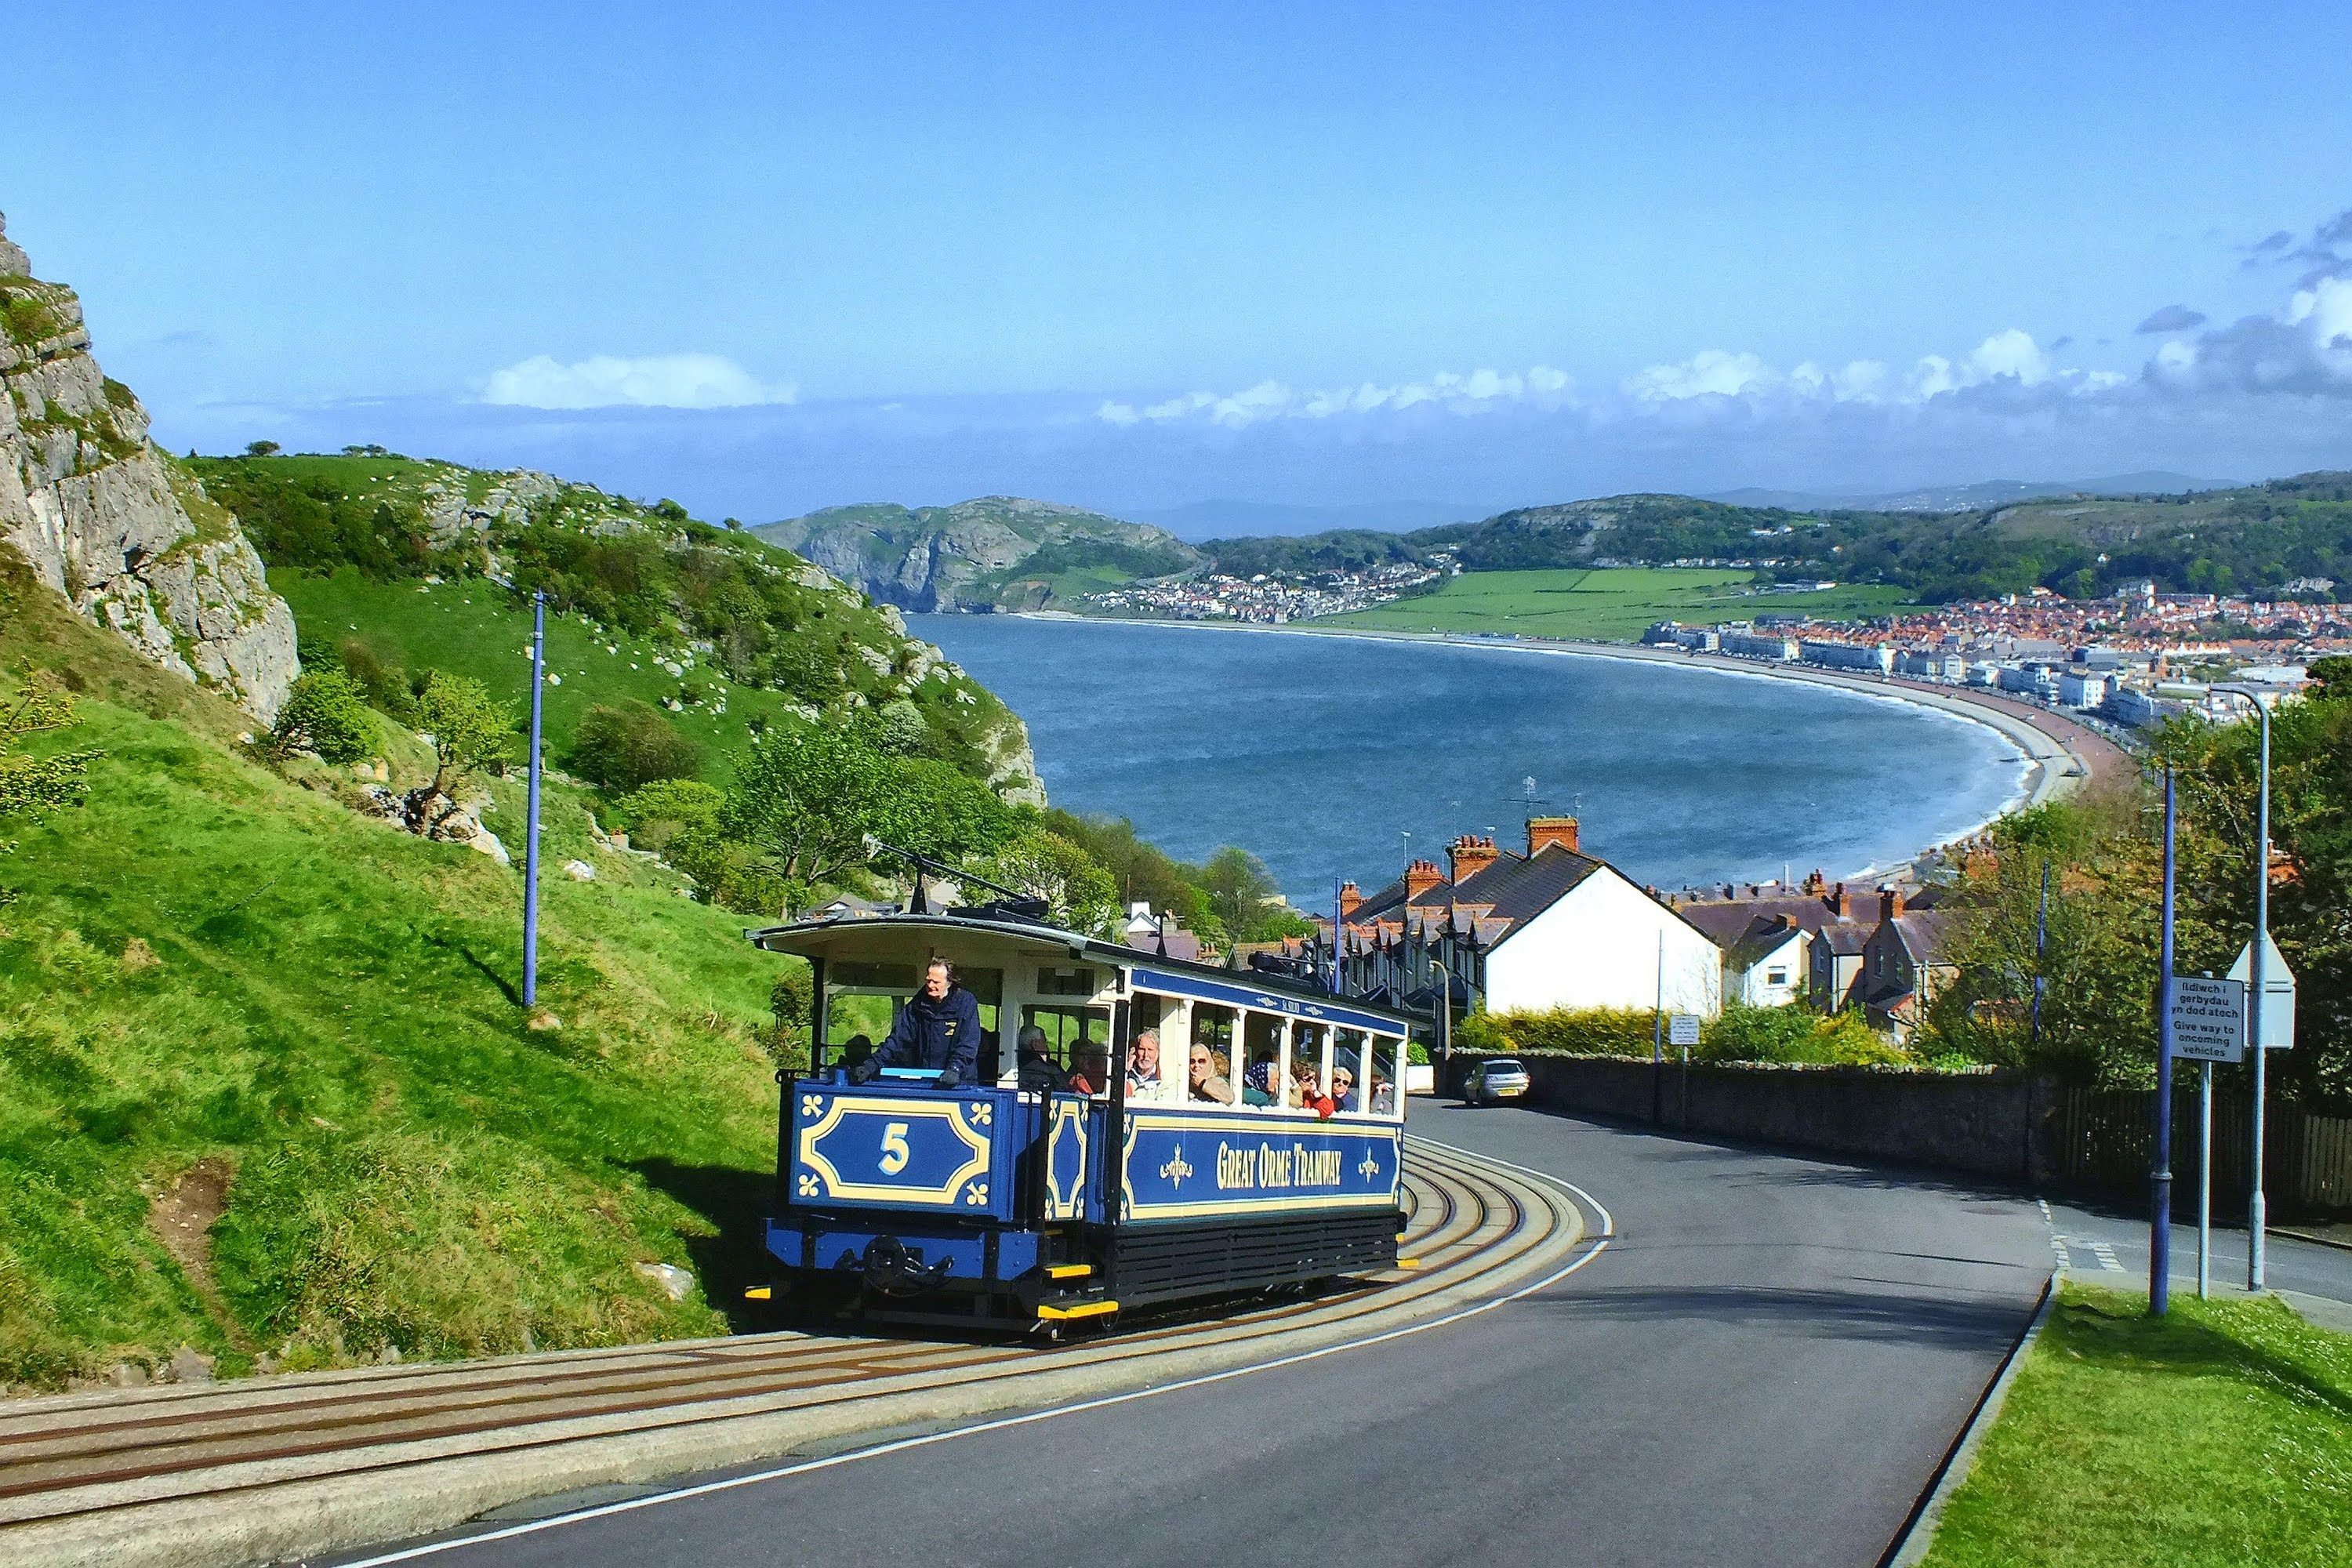 Great Orme Llandudno, The Great Orme Tramway - YouTube